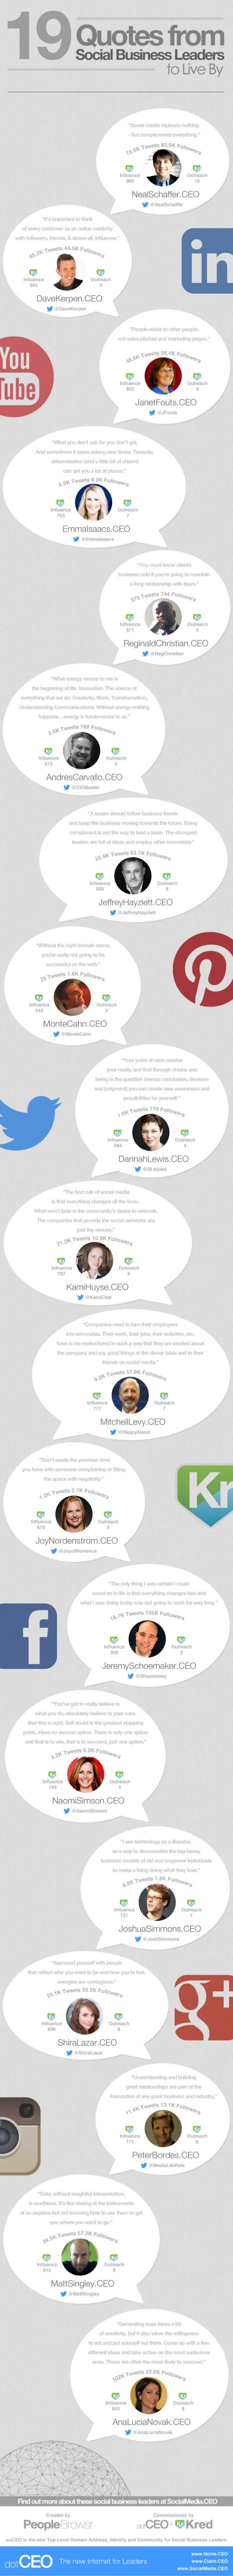 19 Quotes from Social Business Leaders on dotCEO